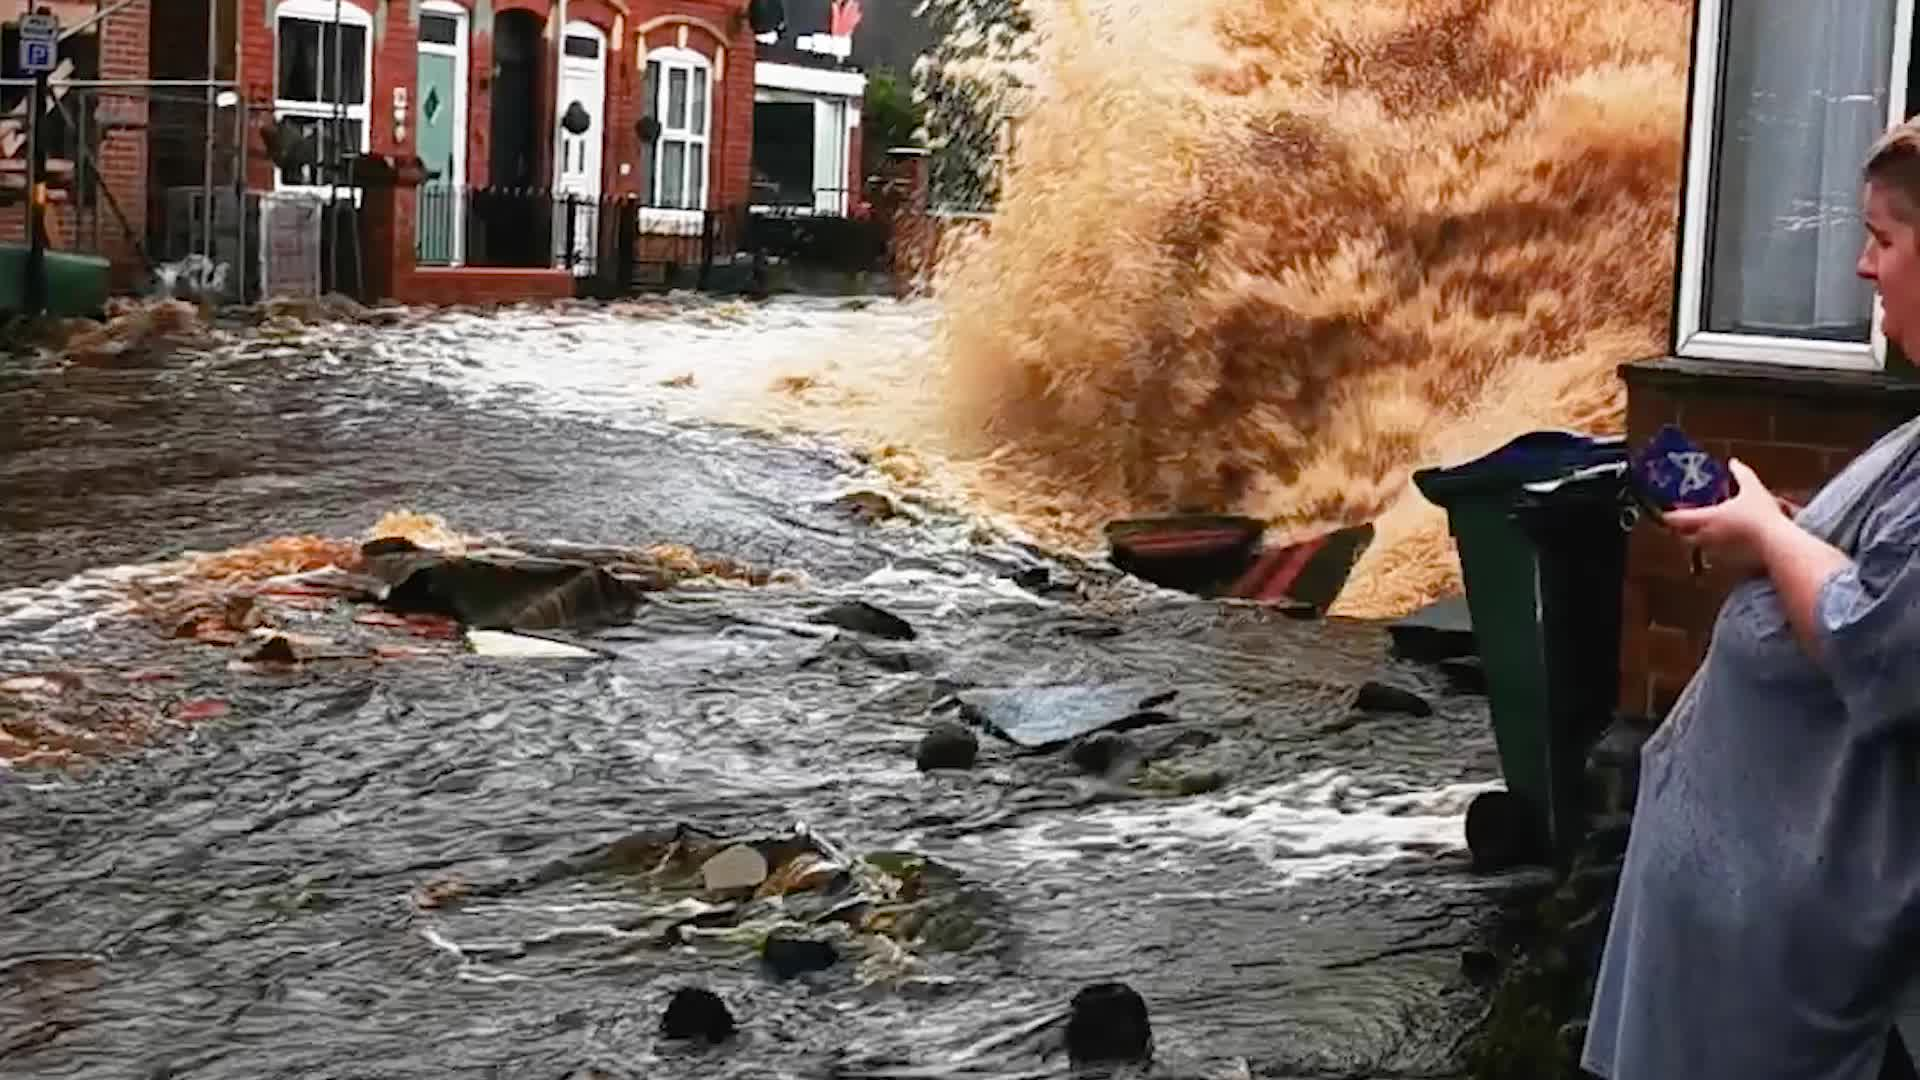 A major water main break sent an explosion of water and flooded houses in Tipton just northwest of Birmingham in the U.K. The floodwaters damaged houses and prompted evacuations.